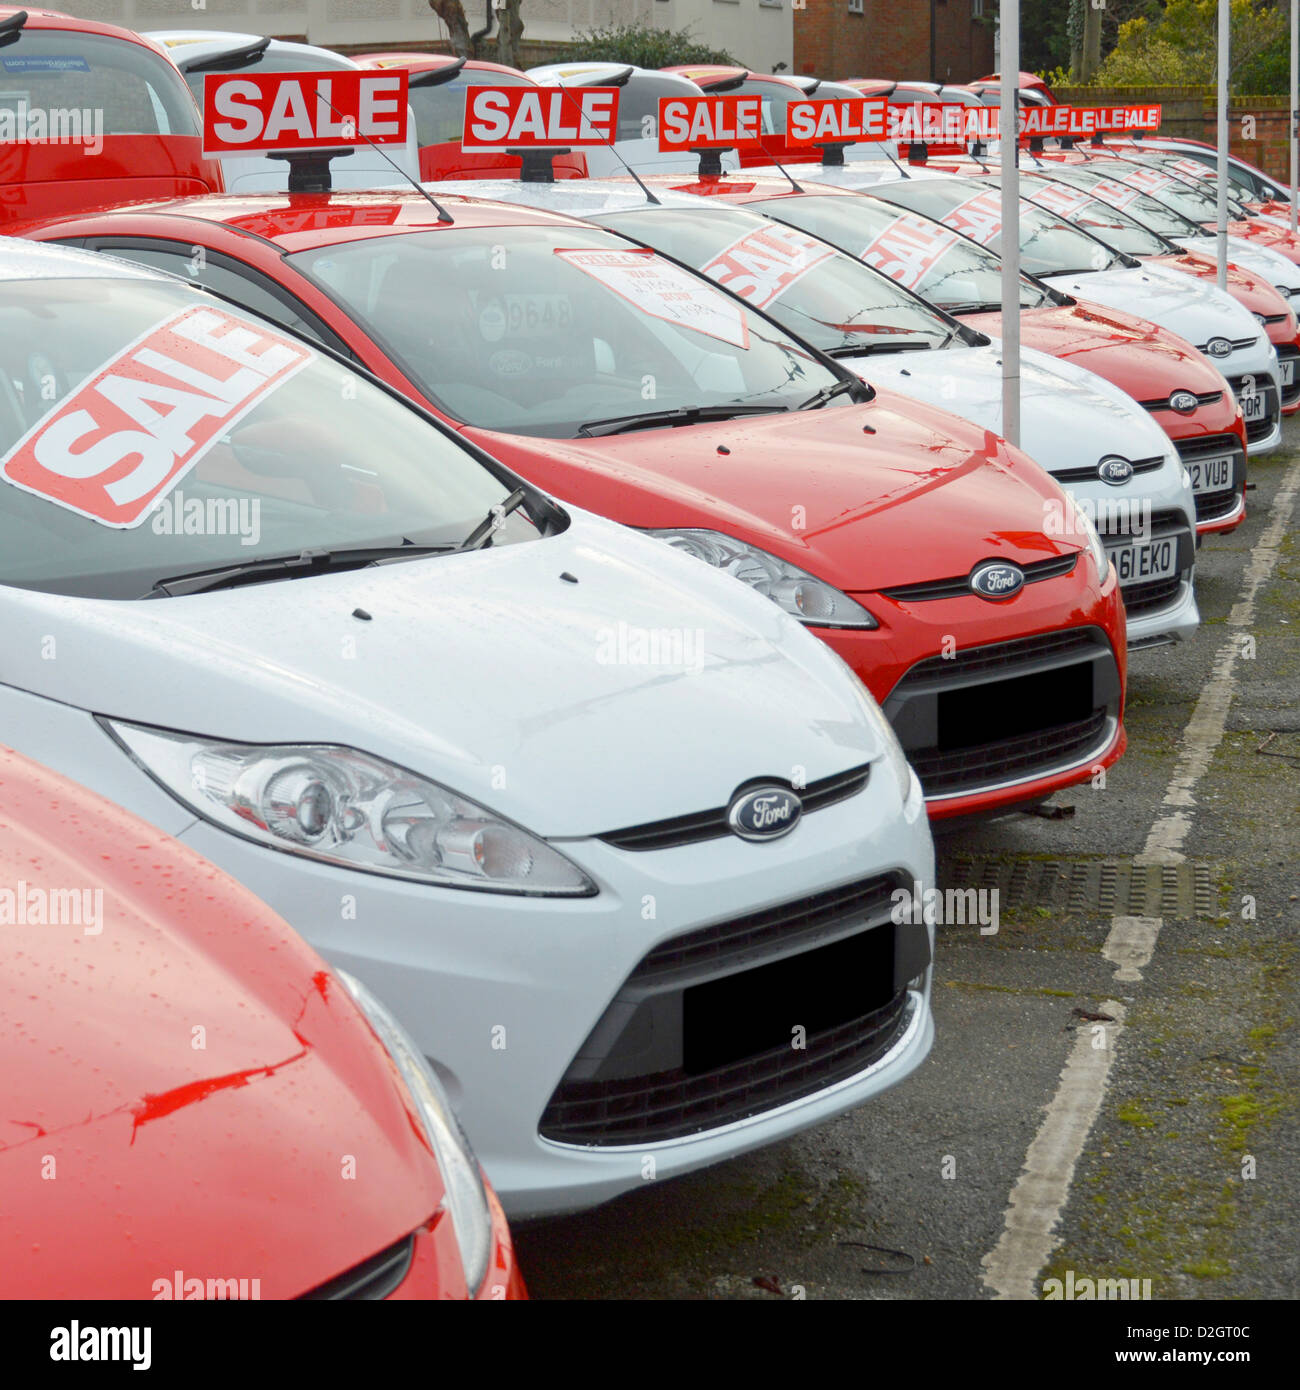 Ford cars for sale on main dealership forecourt outside showroom arranged alternate red and white obscured numberplates - Stock Image